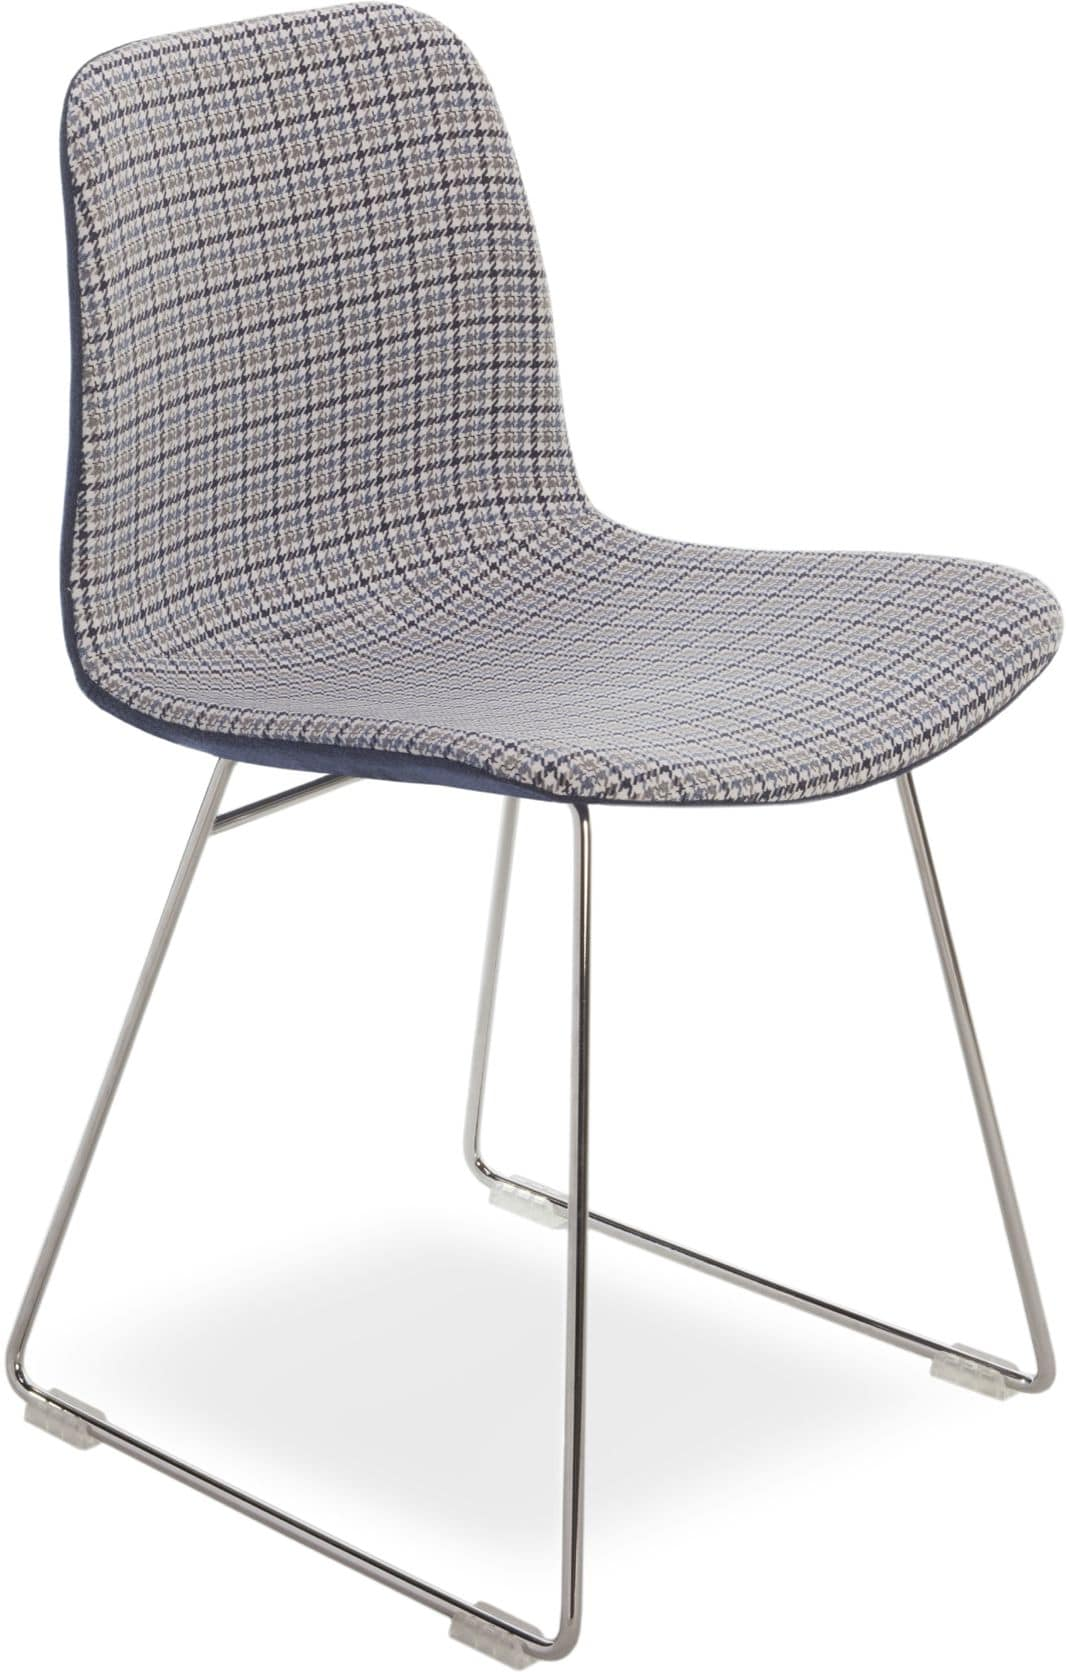 Dama UP, Modern chair with metal base, seat in fabric